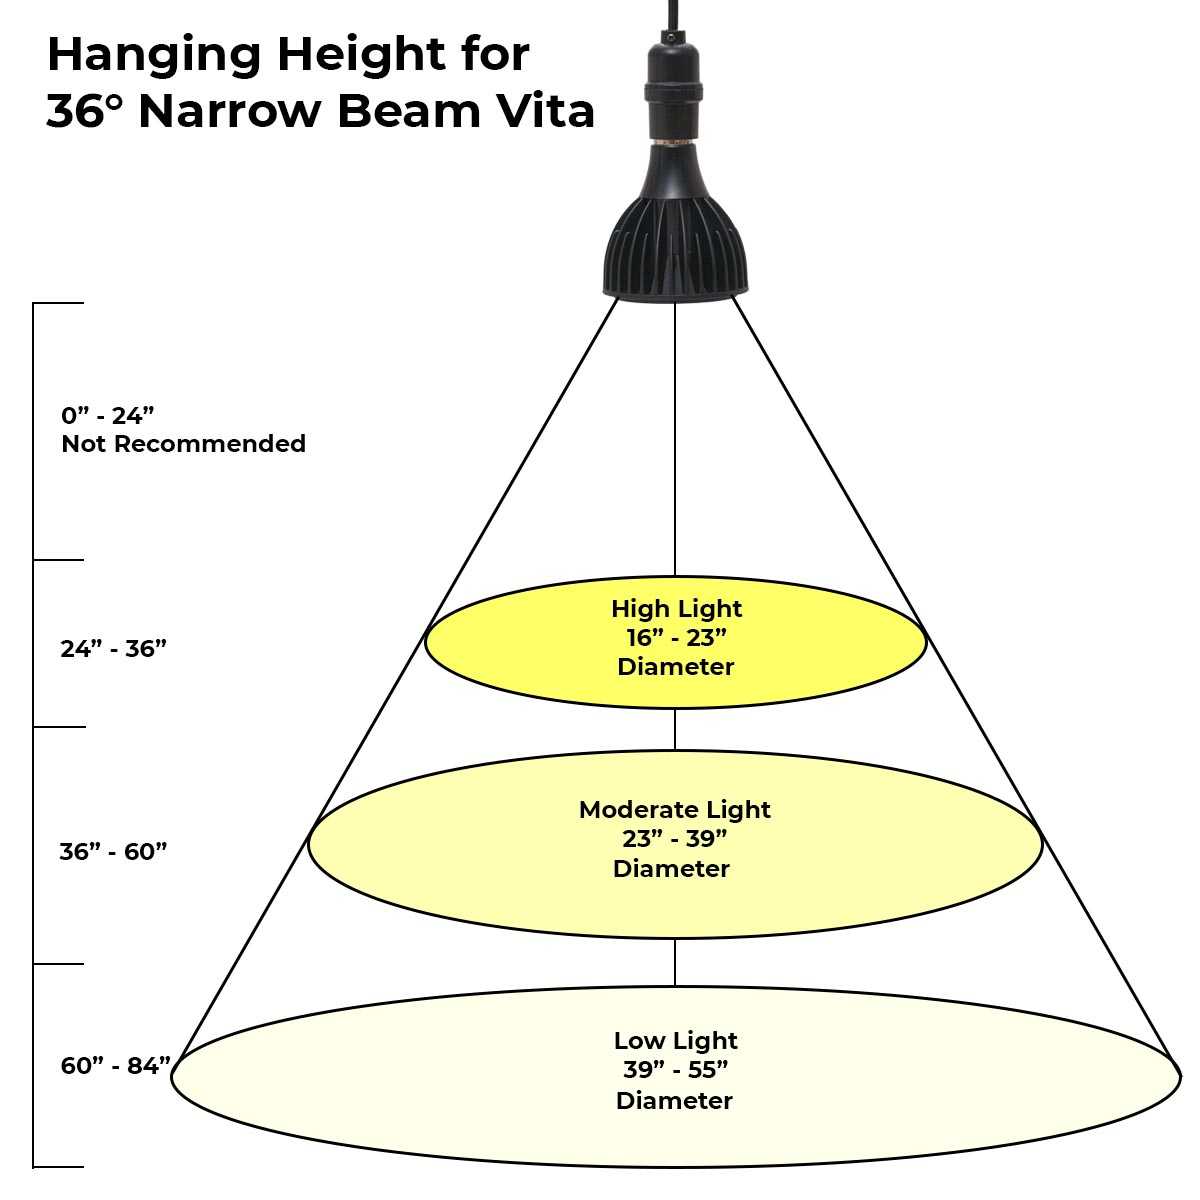 Vita 36 Narrow Official Hanging Heights and Coverage Final